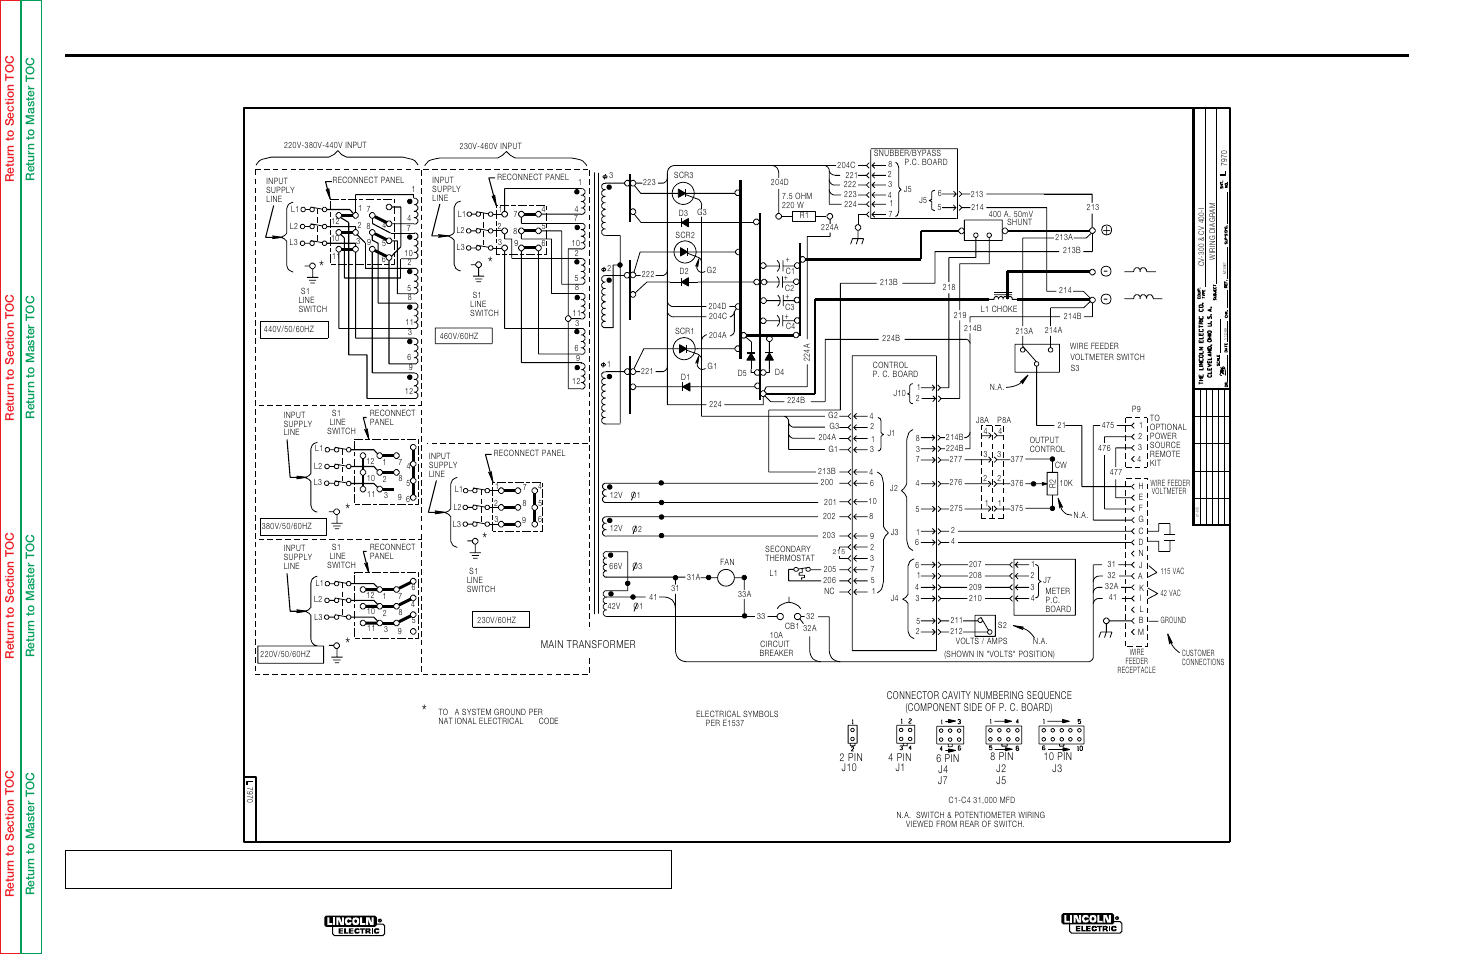 electrical diagrams wiring diagram for code 9456 lincoln electric rh  manualsdir com 1999 Lincoln Navigator Engine Diagram 2001 Lincoln Navigator  Engine ...